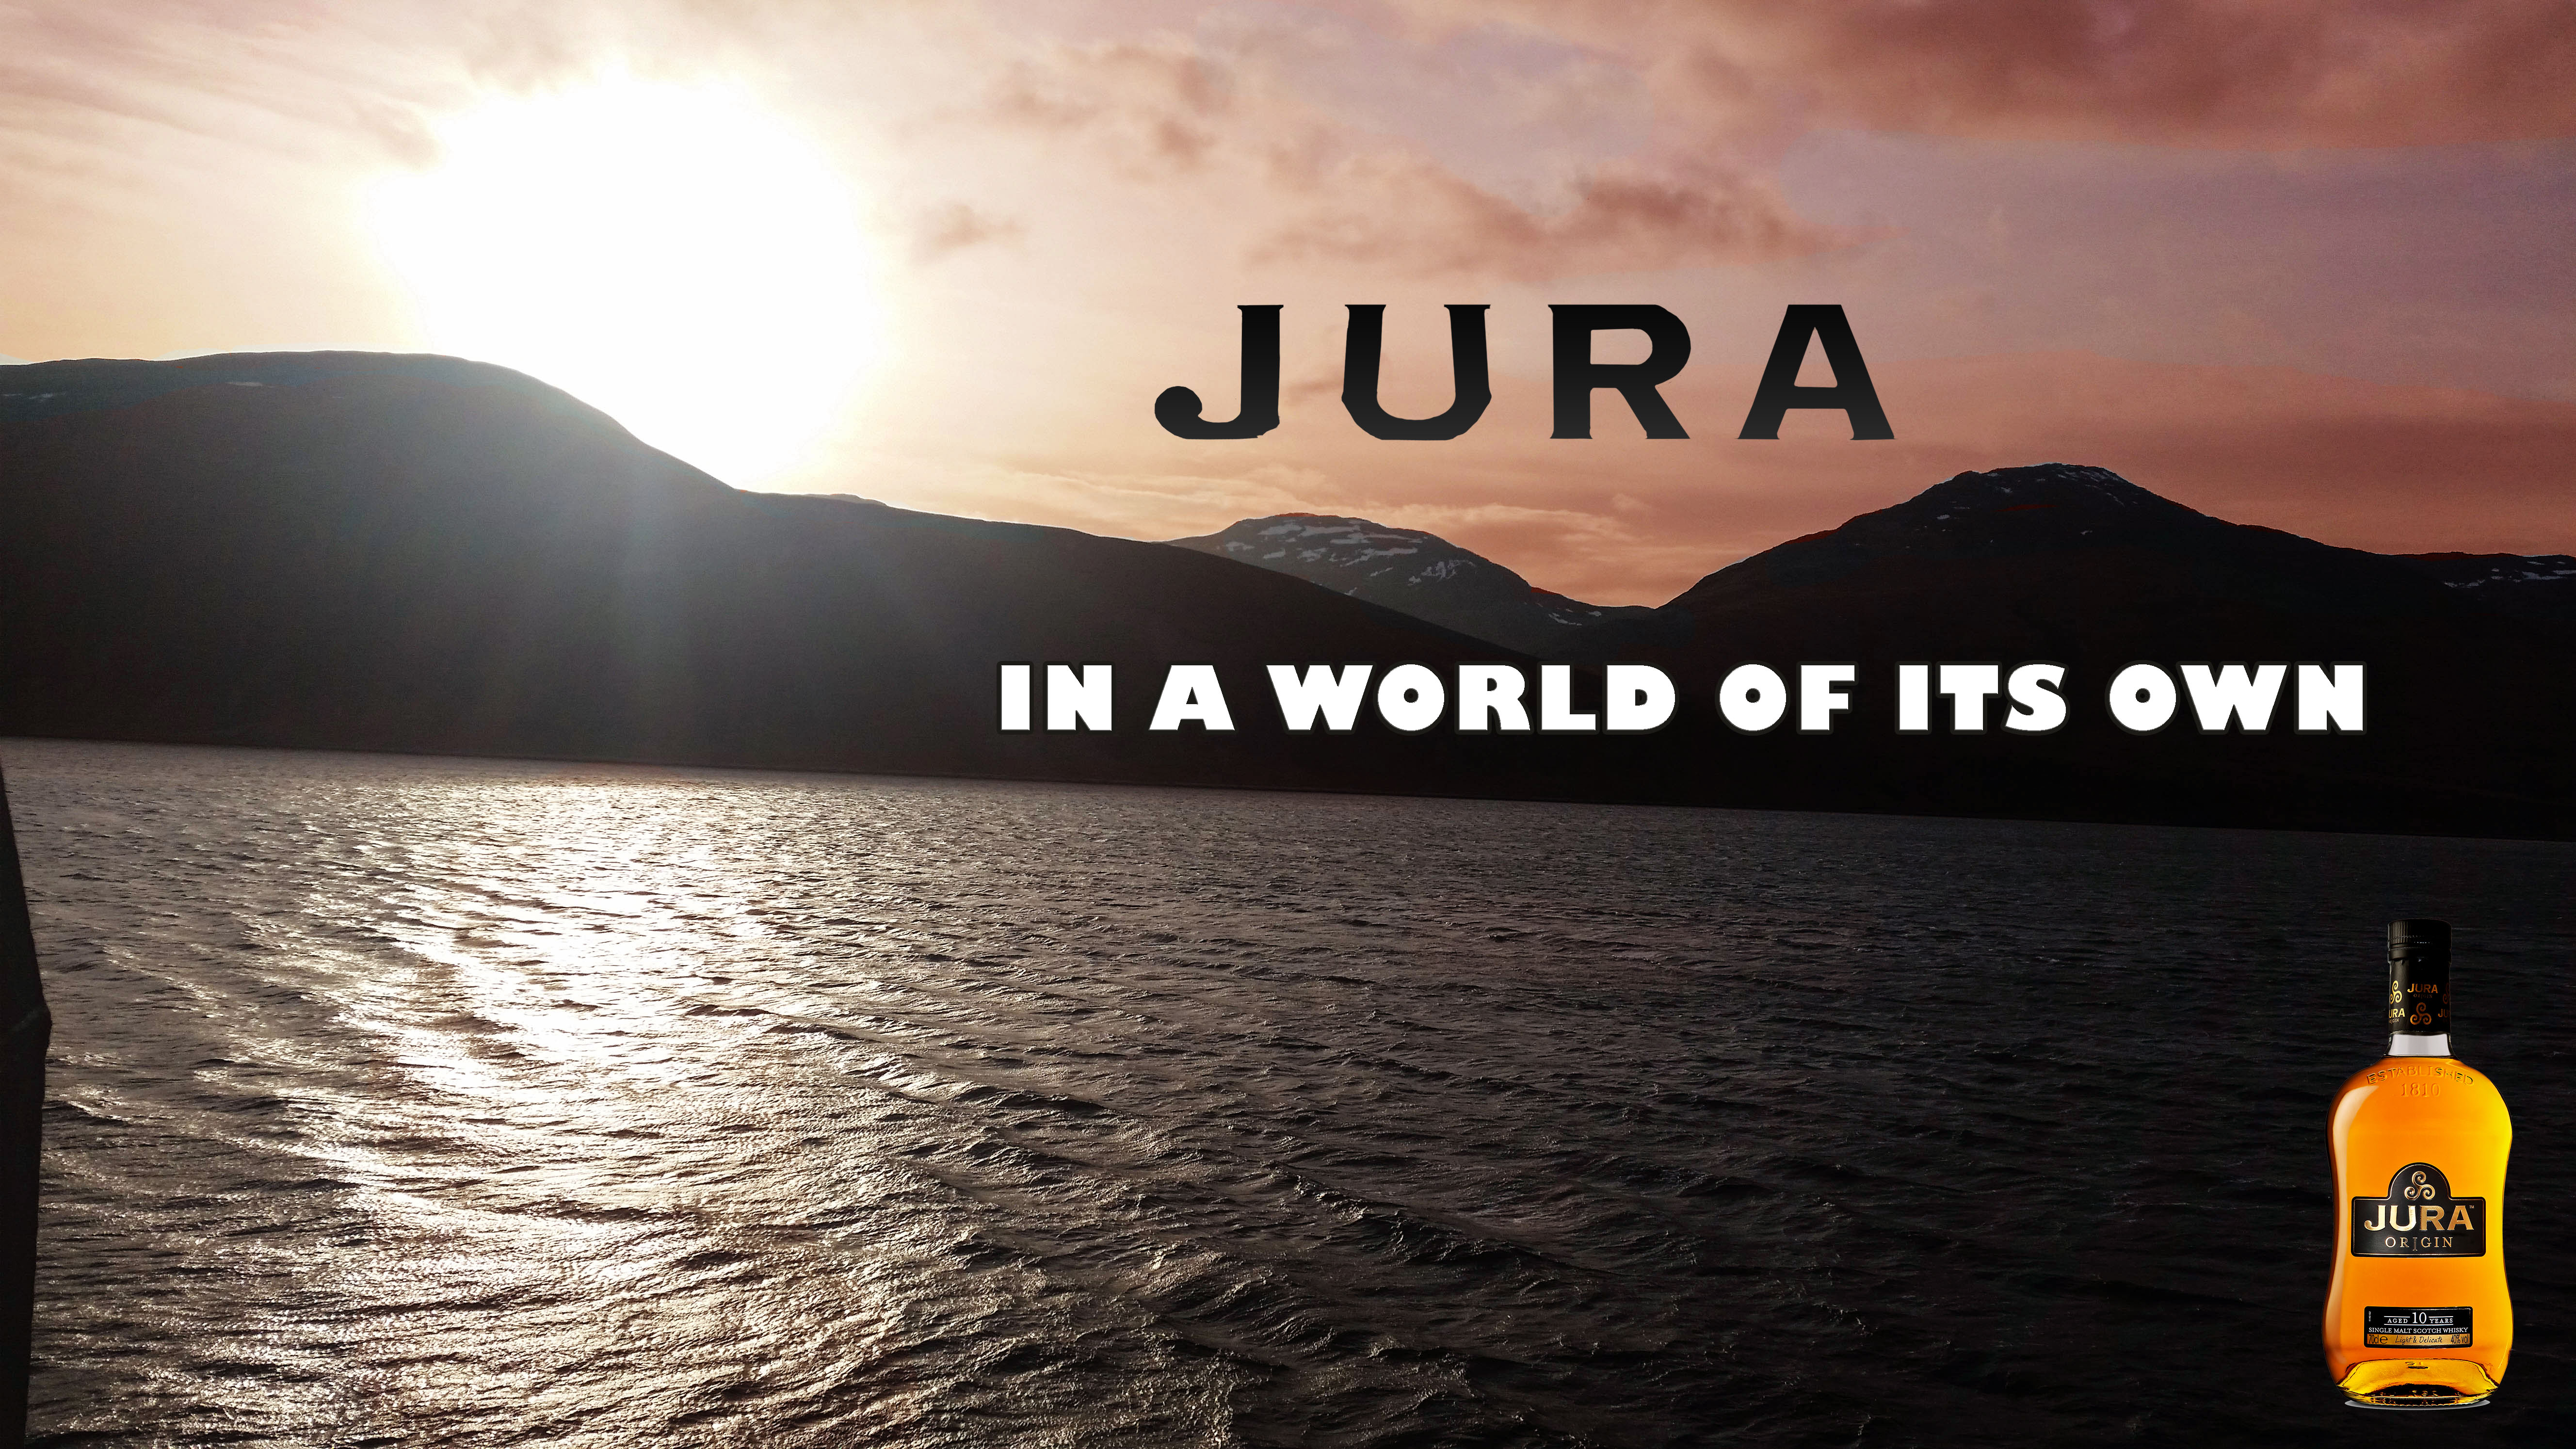 Jura Whisky uses steam in the distilling process